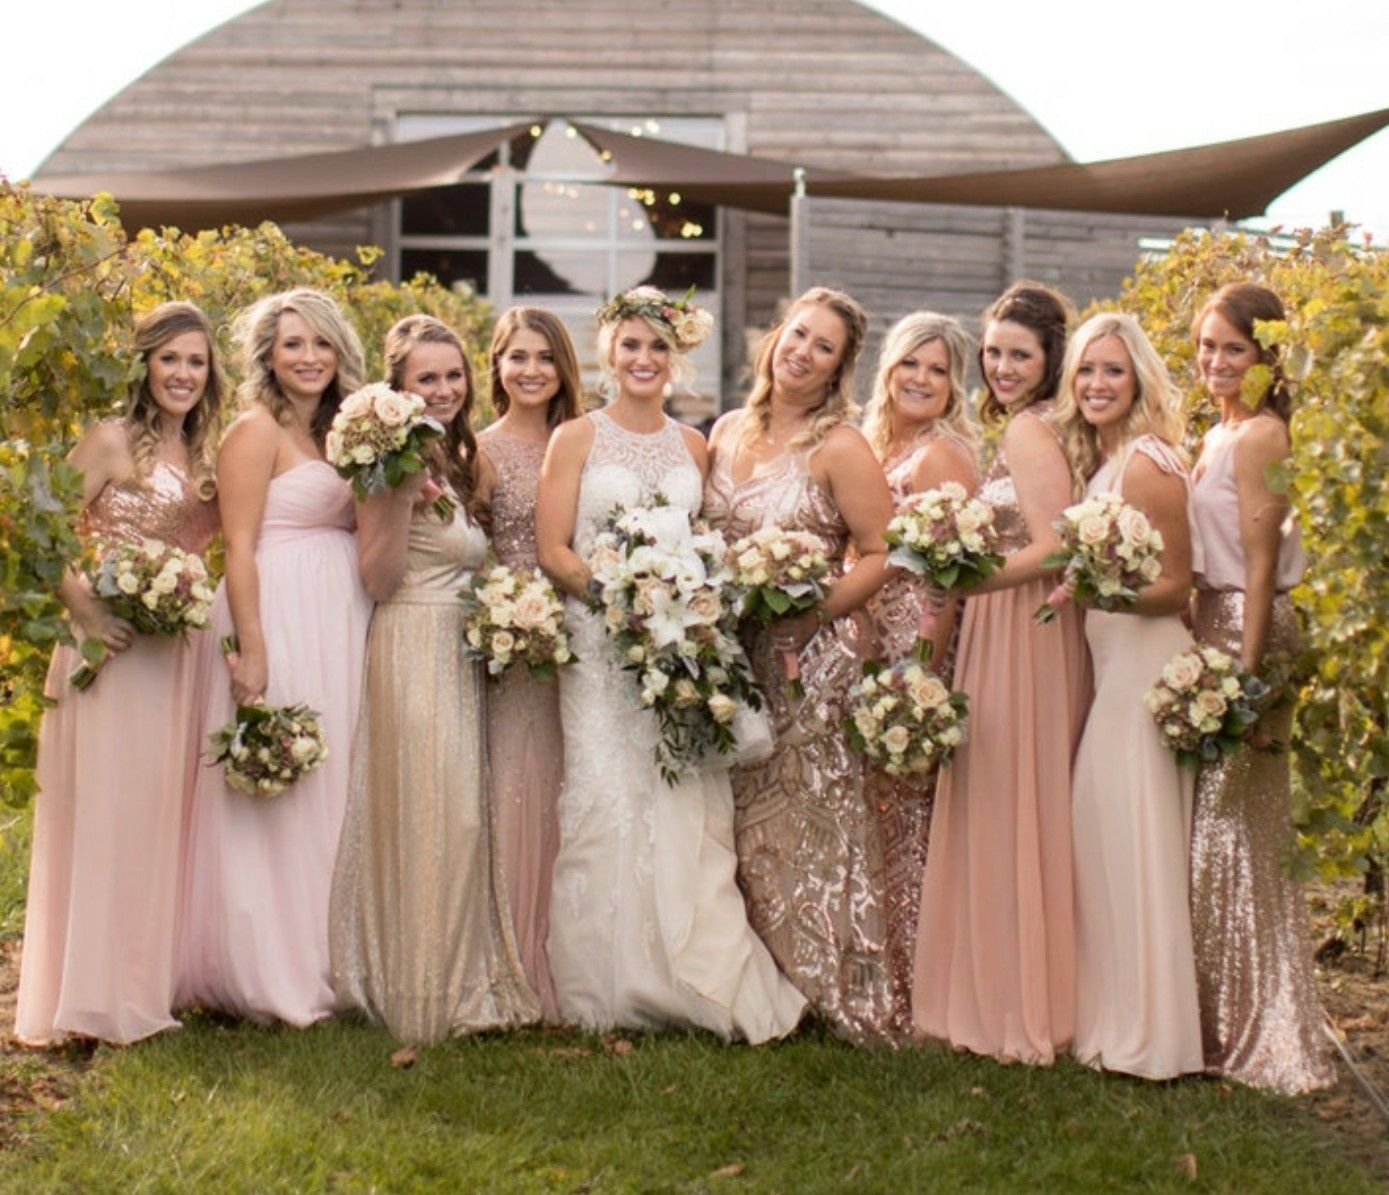 Pin By Abby Kulik On Wedding Planning In